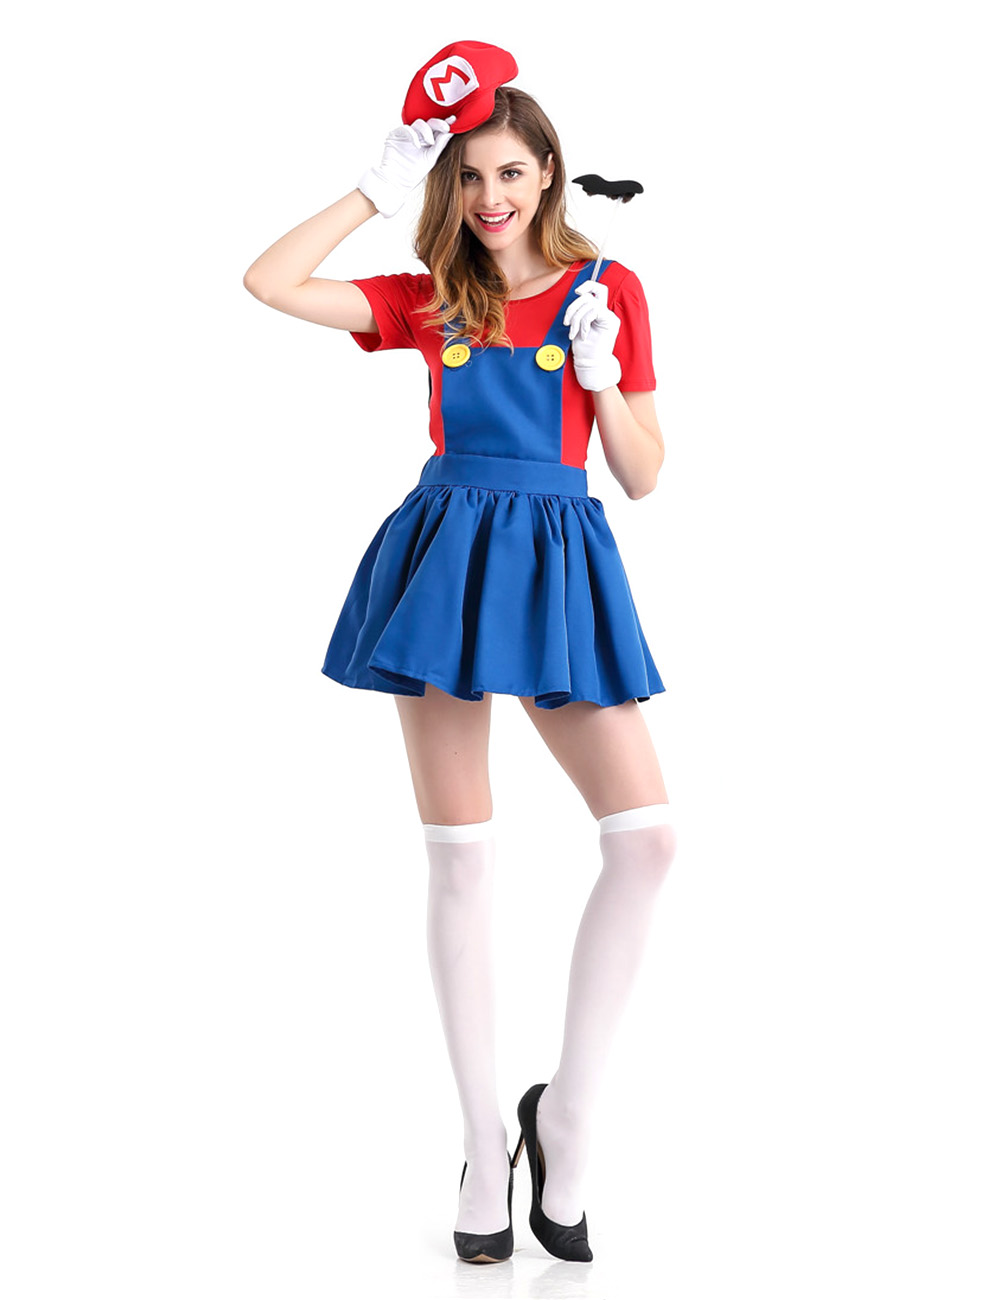 5PCS/Set Women Suspender Skirt Set Stylish Performance Costume for Halloween Fancy Dress Ball red_M